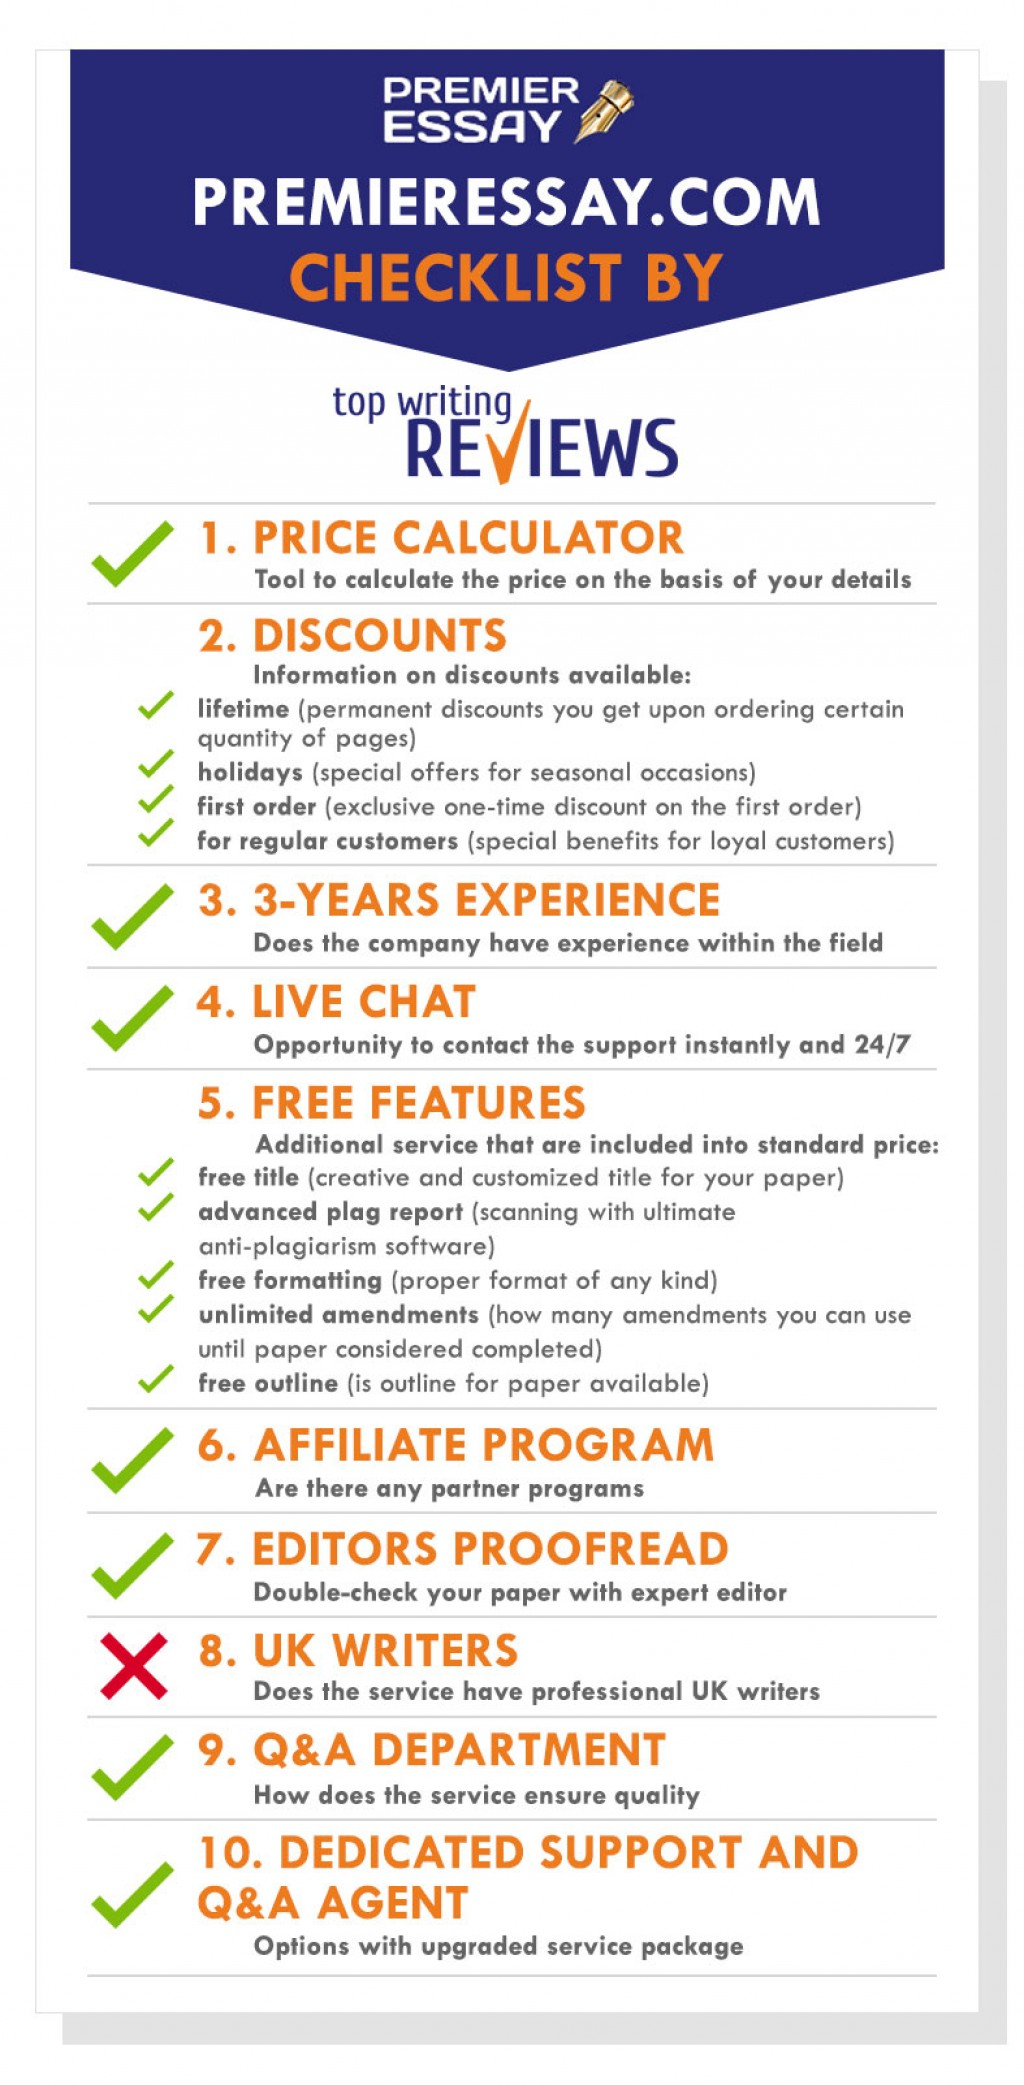 021 Essay Example Checklist Review Of Premieressay By Topwritingreviews Best Impressive Help Writing Services Uk Reviews Service Large